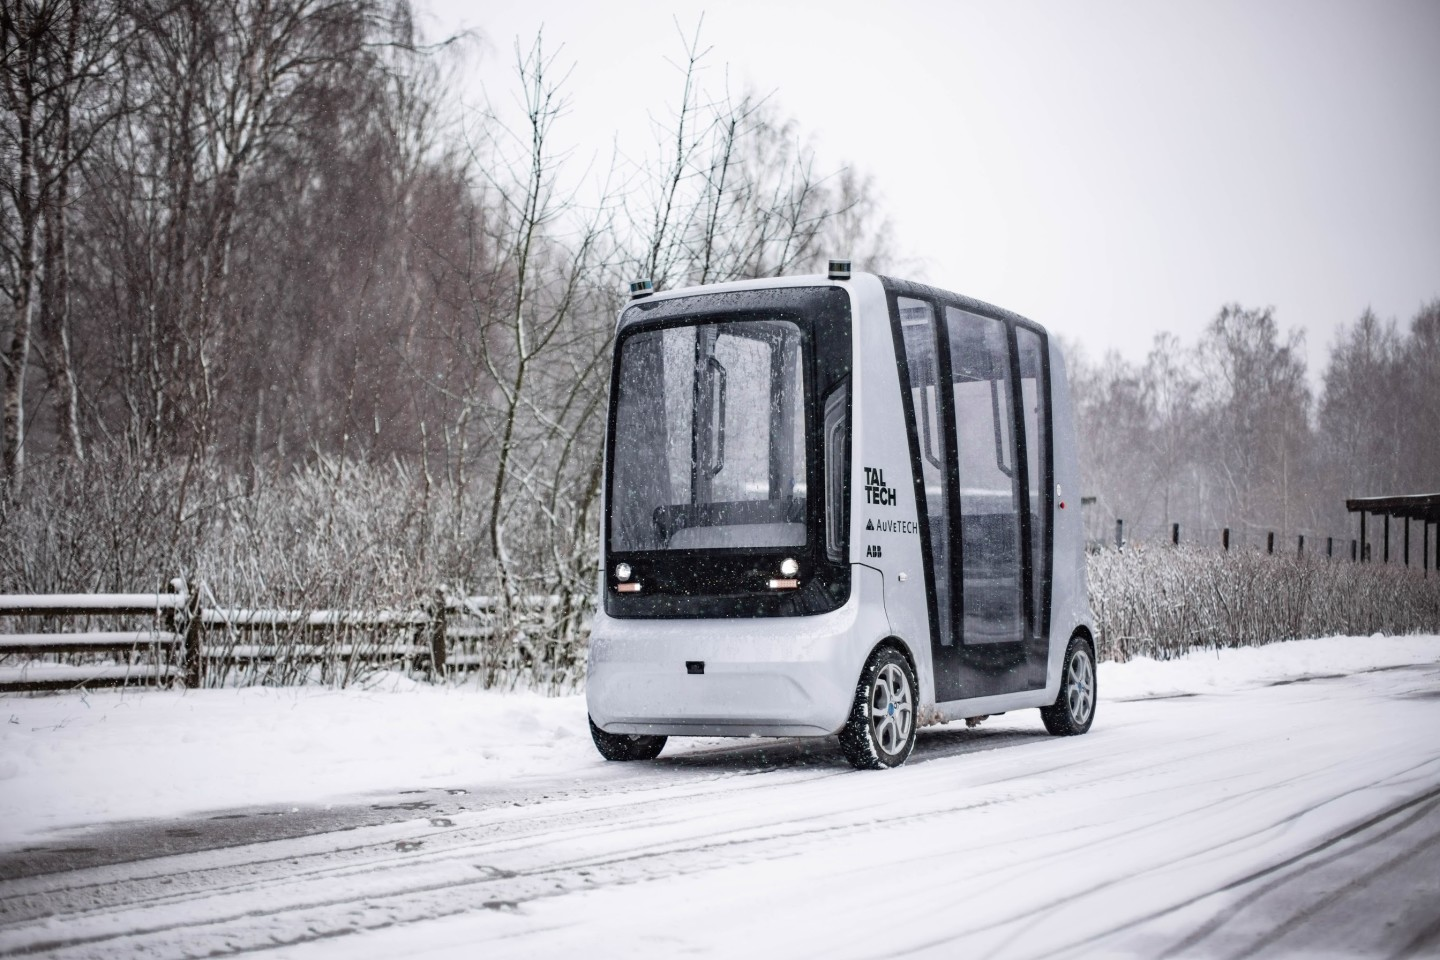 The three autonomous vehicle prototypes being used in the FABULOS pilots need to operate in all weather conditions